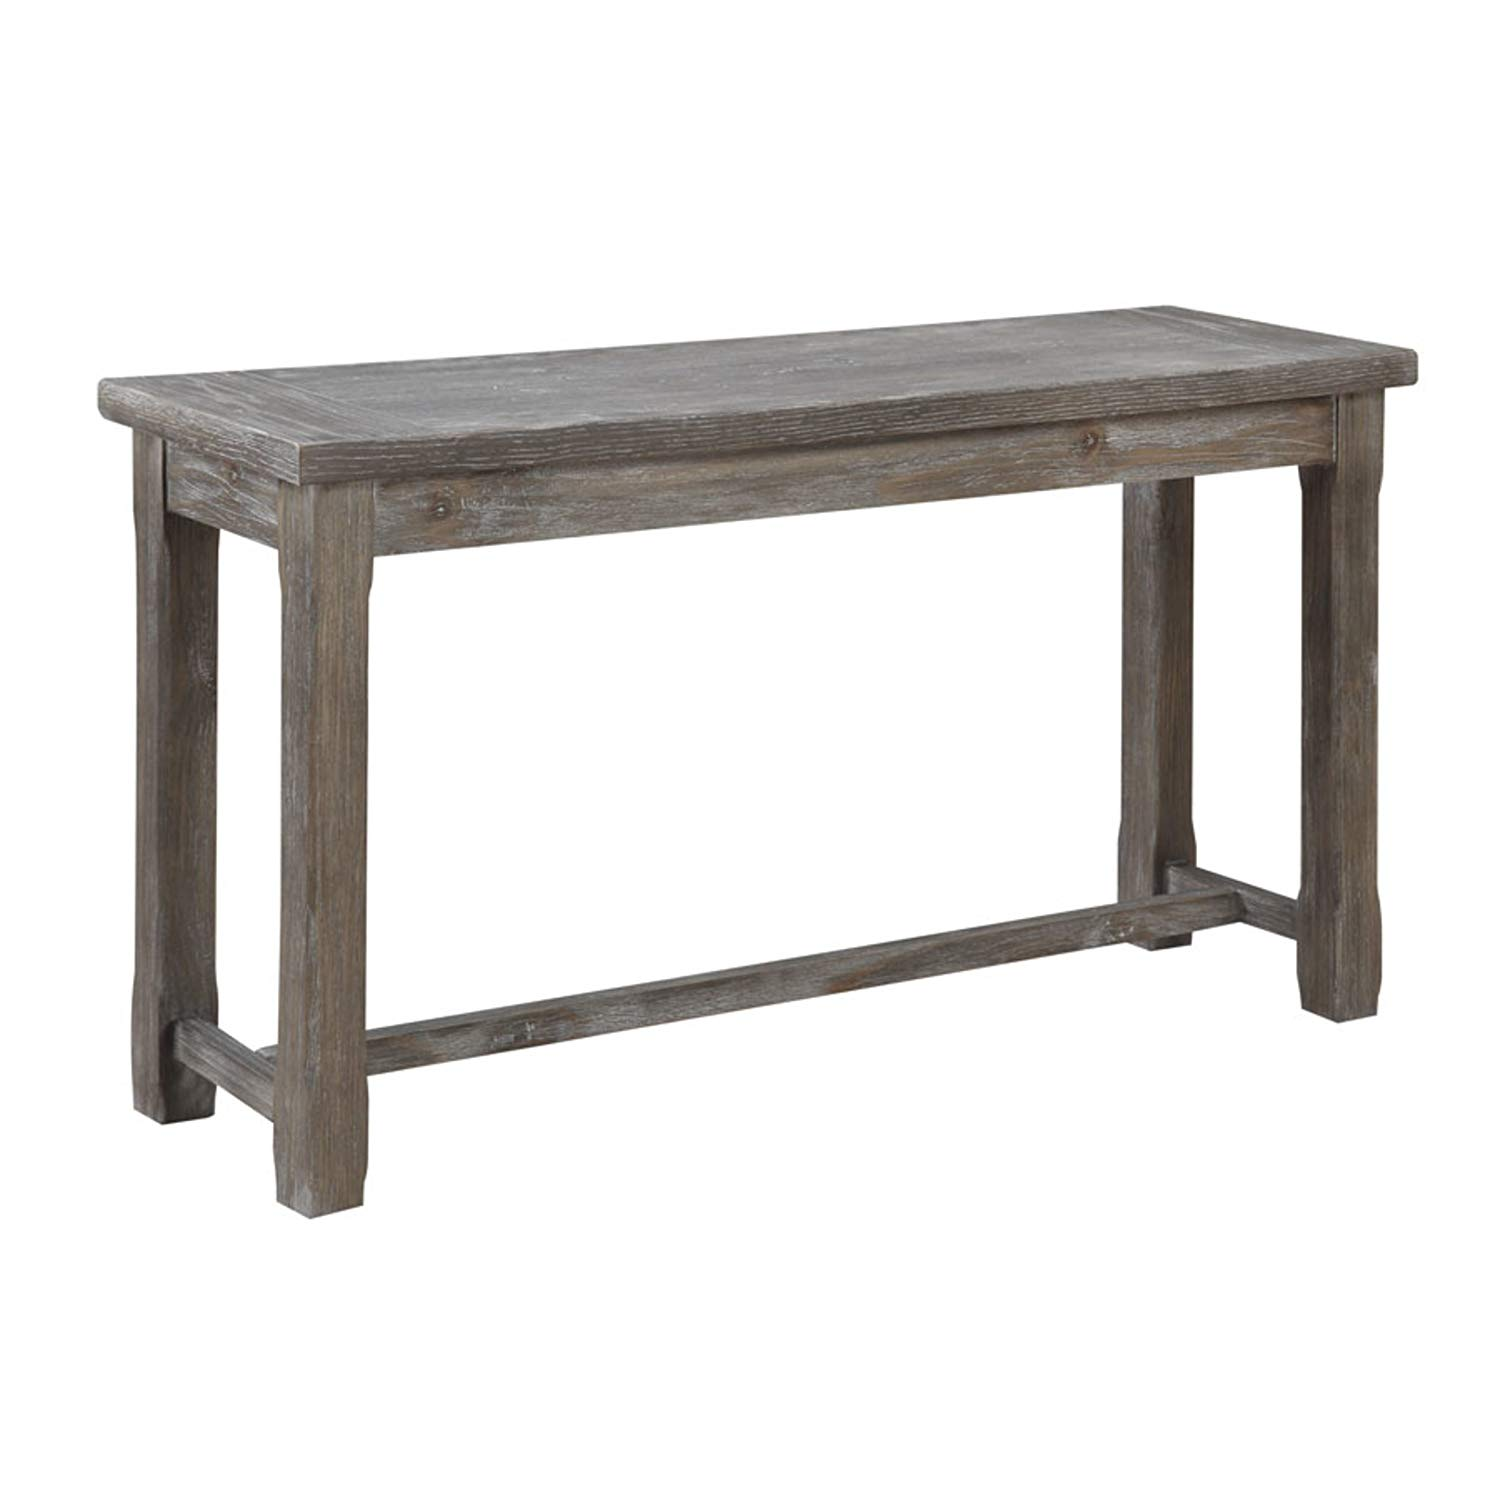 emerald home paladin rustic charcoal gray sofa table green accent with plank style top and farmhouse timber legs kitchen dining white sliding barn door lamps usb unique furniture